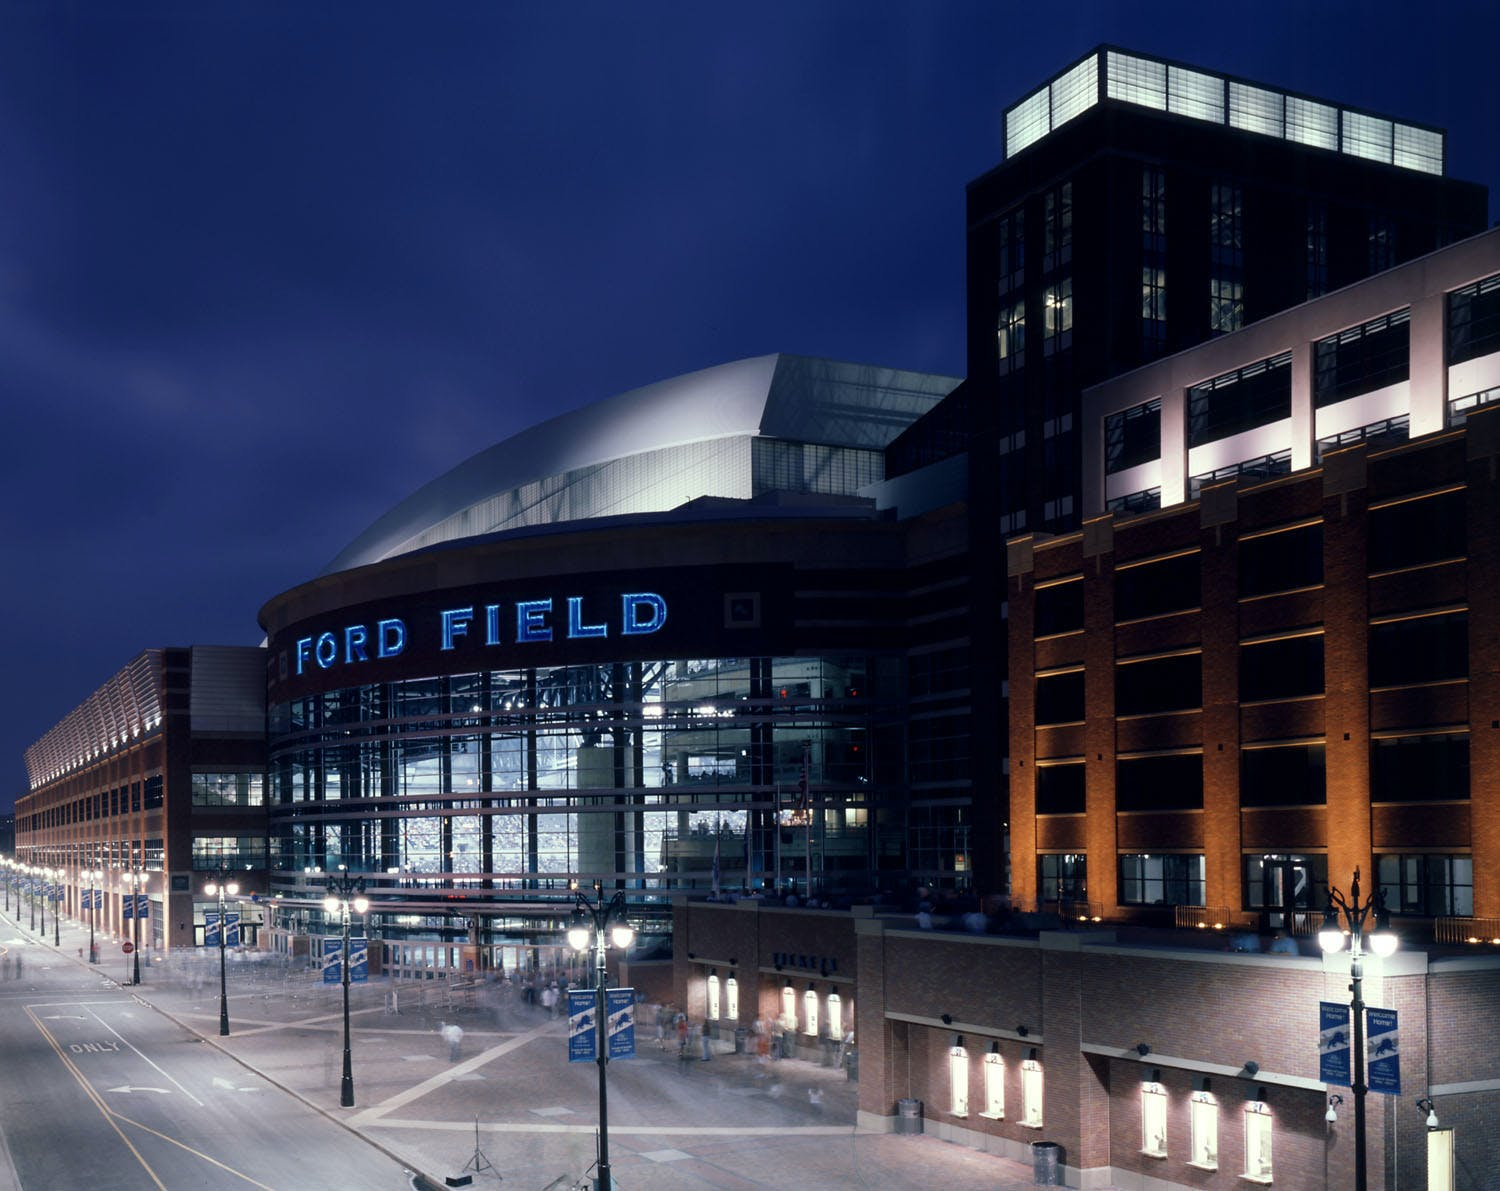 ford field home of the nfl detroit lions rossetti. Black Bedroom Furniture Sets. Home Design Ideas